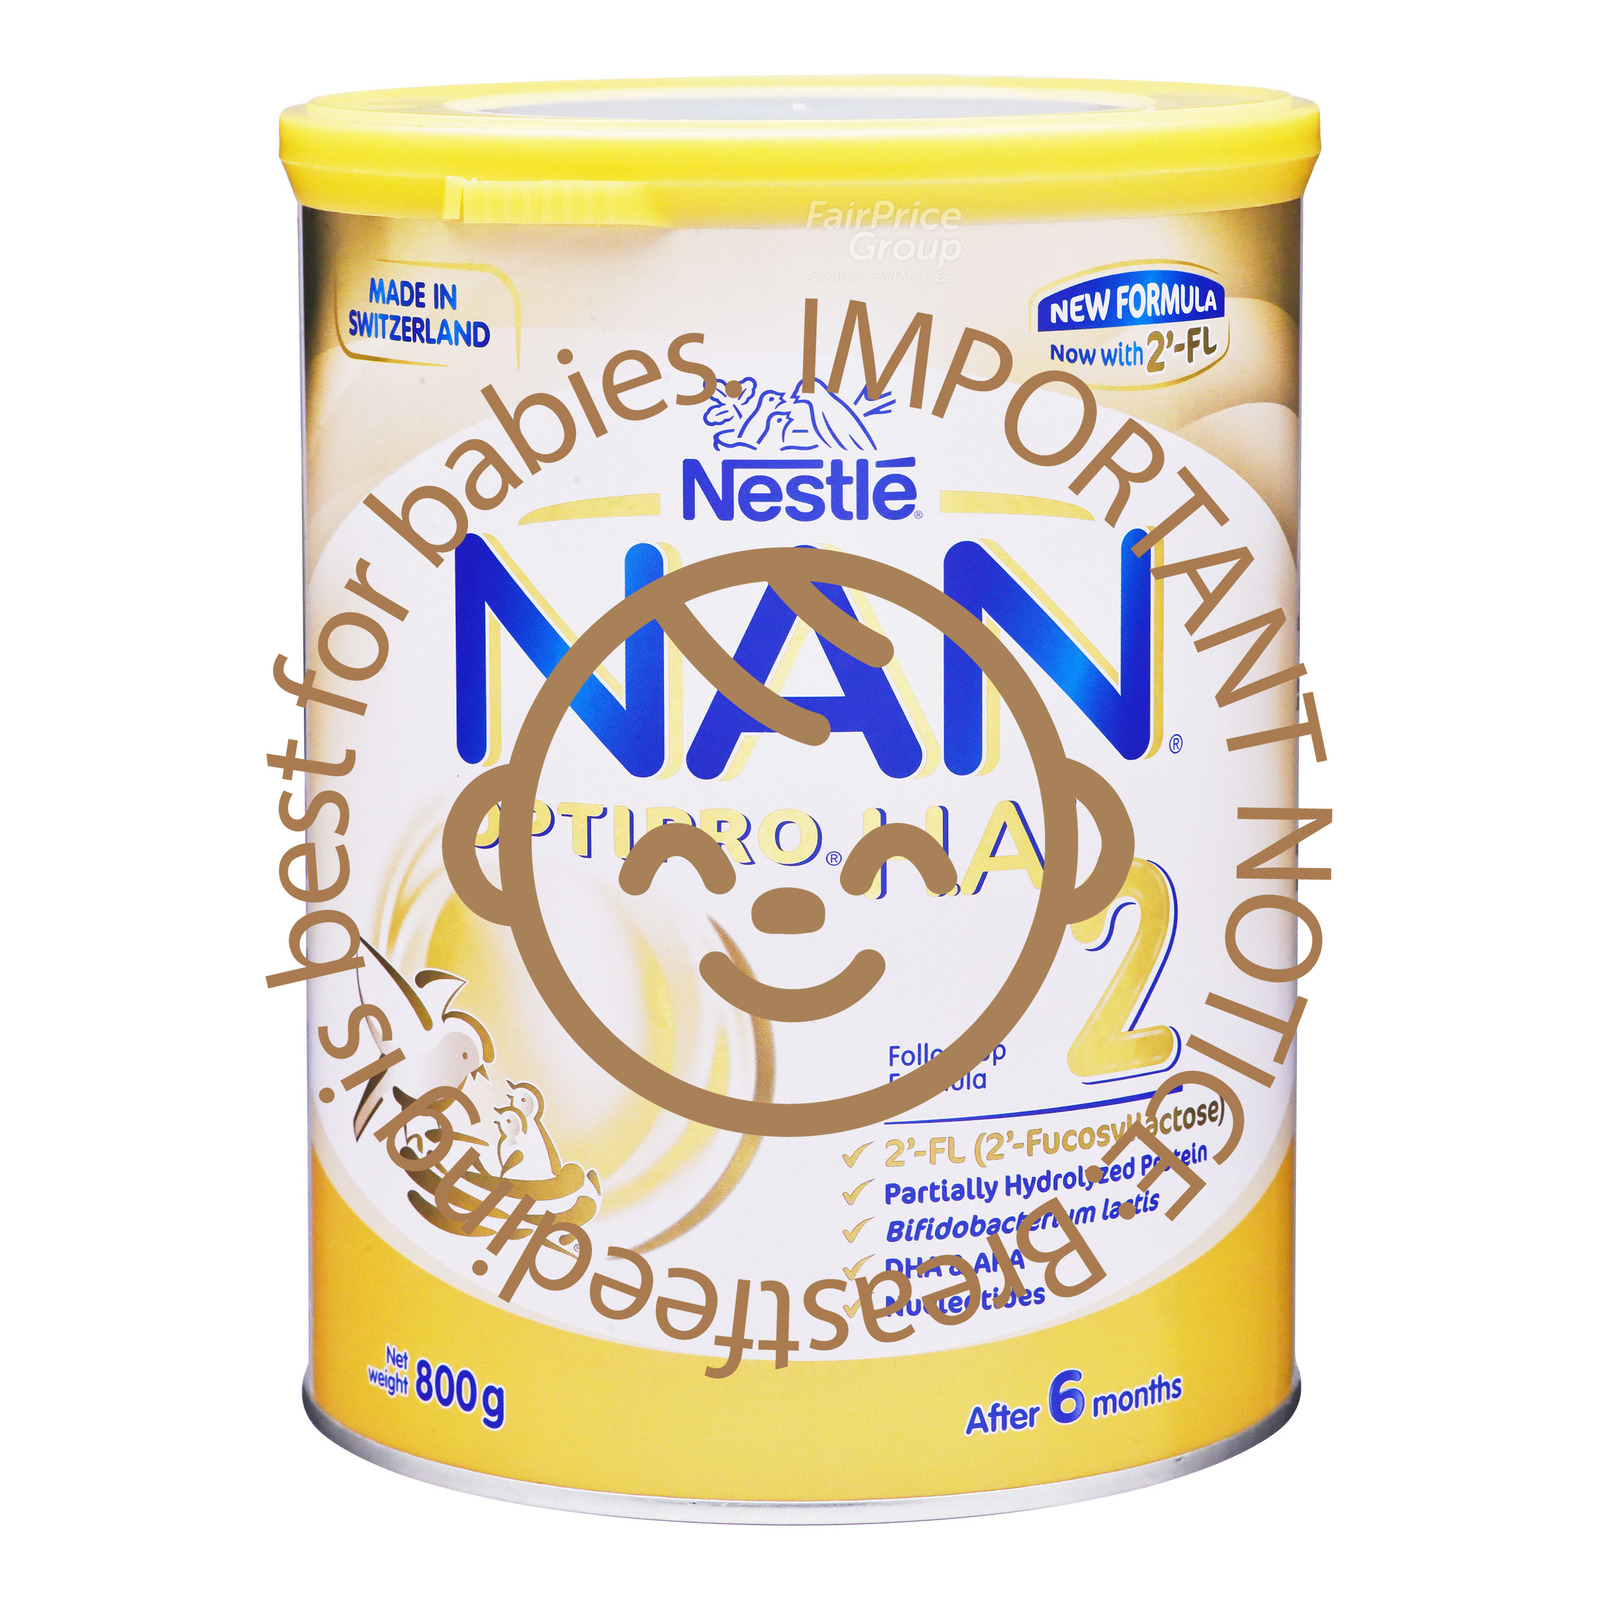 NESTLE NAN® optipro ha stage 2 hypoallergenic follow up formula after 6 months 800g